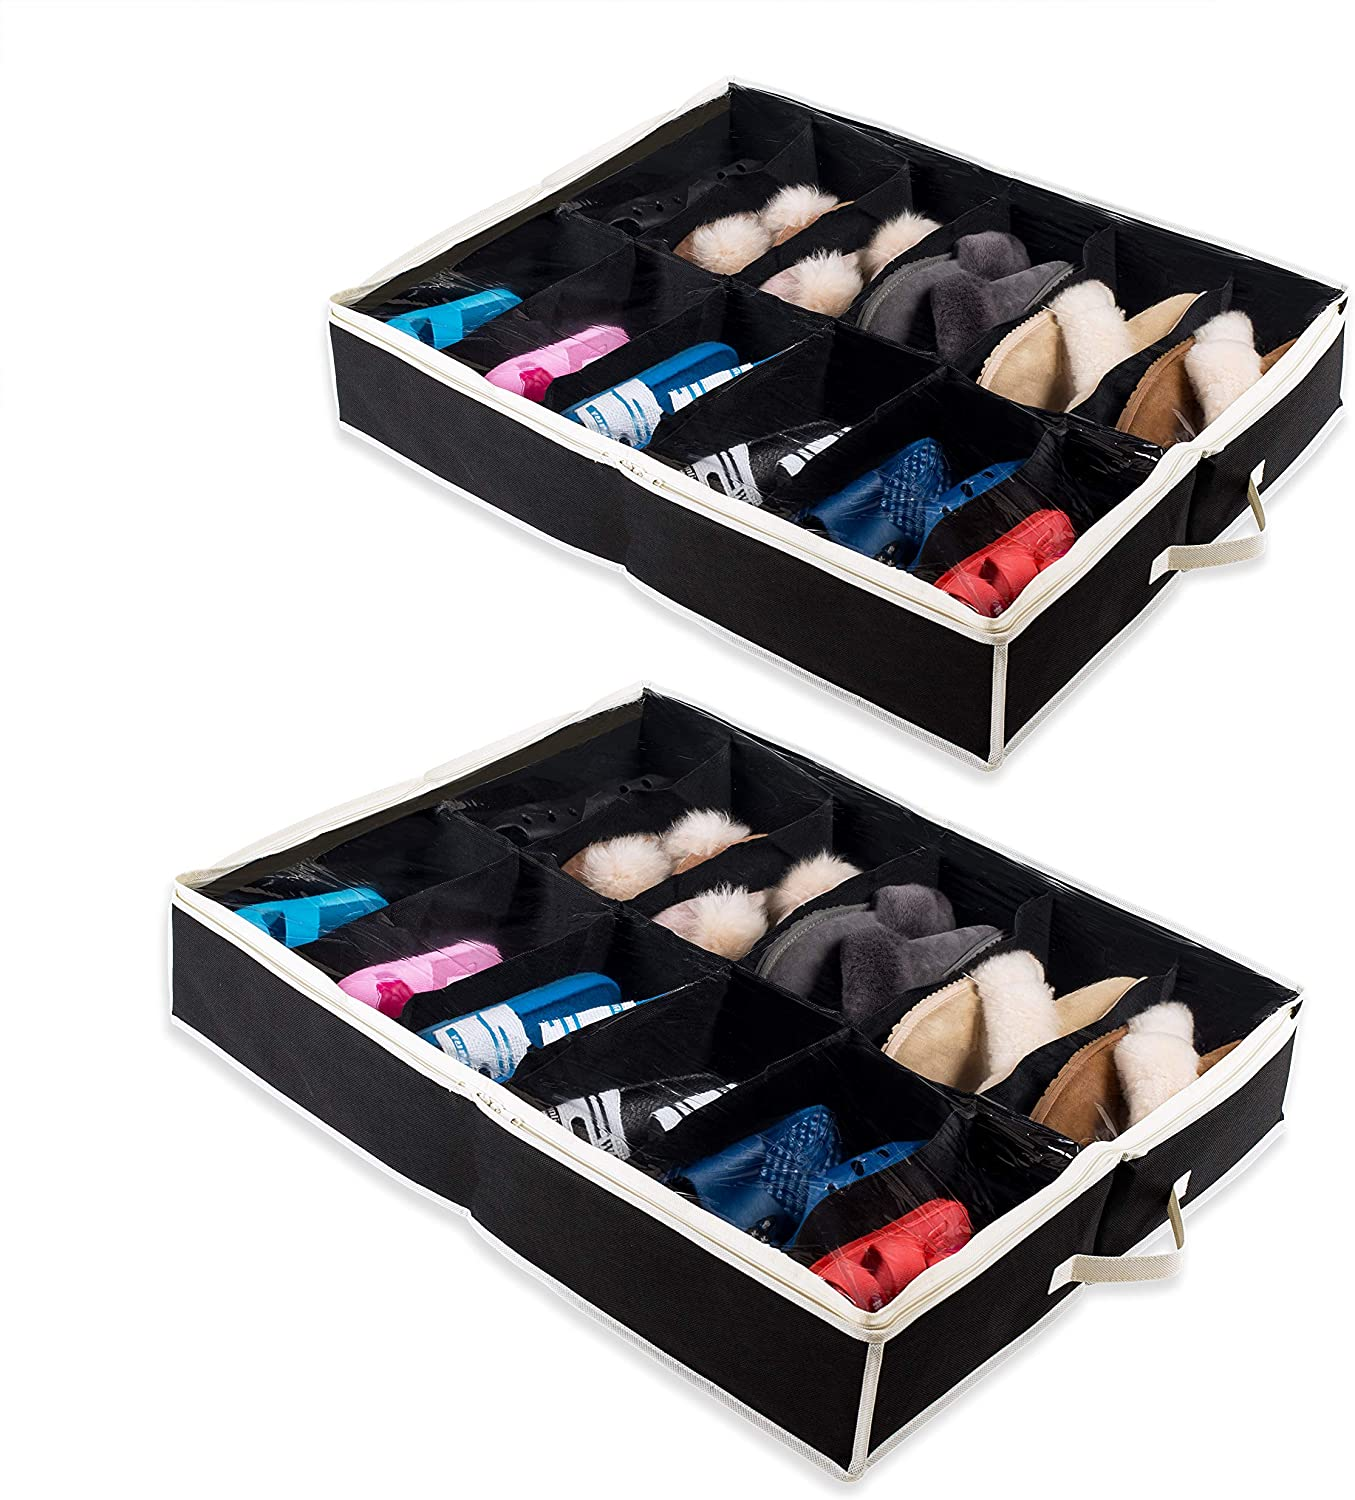 Made with Sturdy /& Breathable Materials Shoes Set of 2 Underbed Storage Solution for Kids /& Adults Woffit Under The Bed Shoe Organizer Fits 12 Pairs Men /& Women Renewed